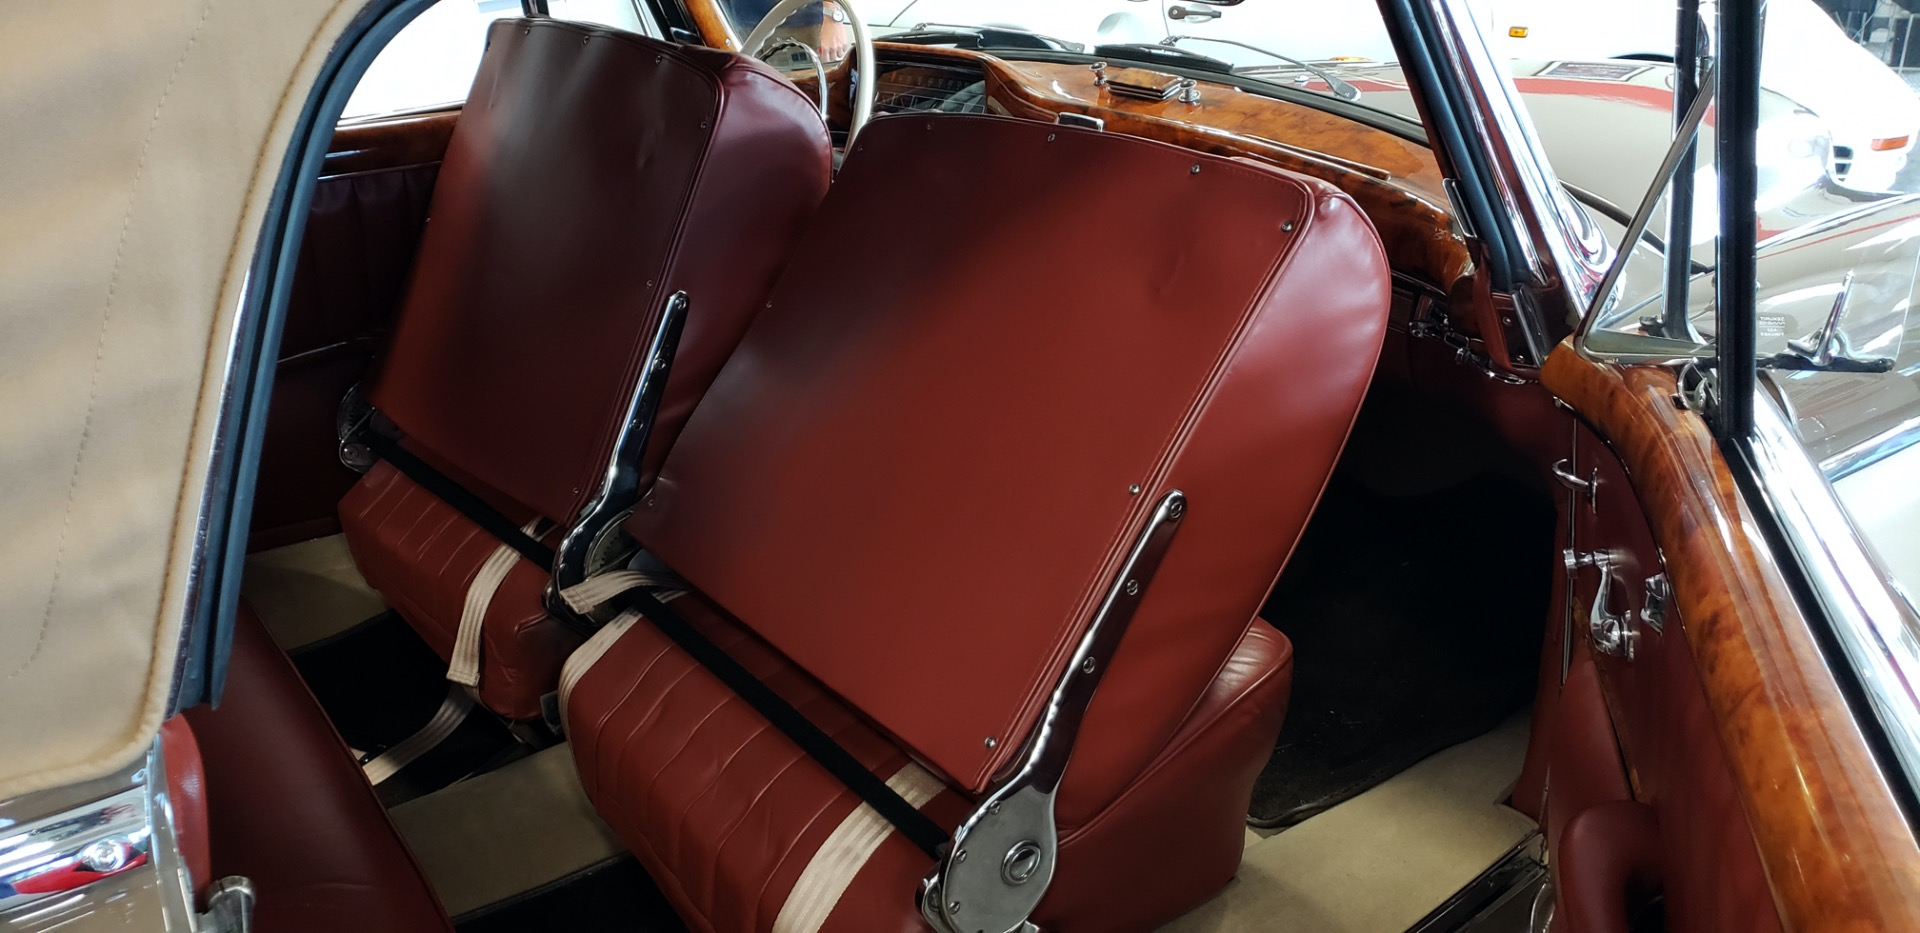 Used 1957 Mercedes-Benz 220 S Cabriolet - Full Restoration for sale Sold at Formula Imports in Charlotte NC 28227 32